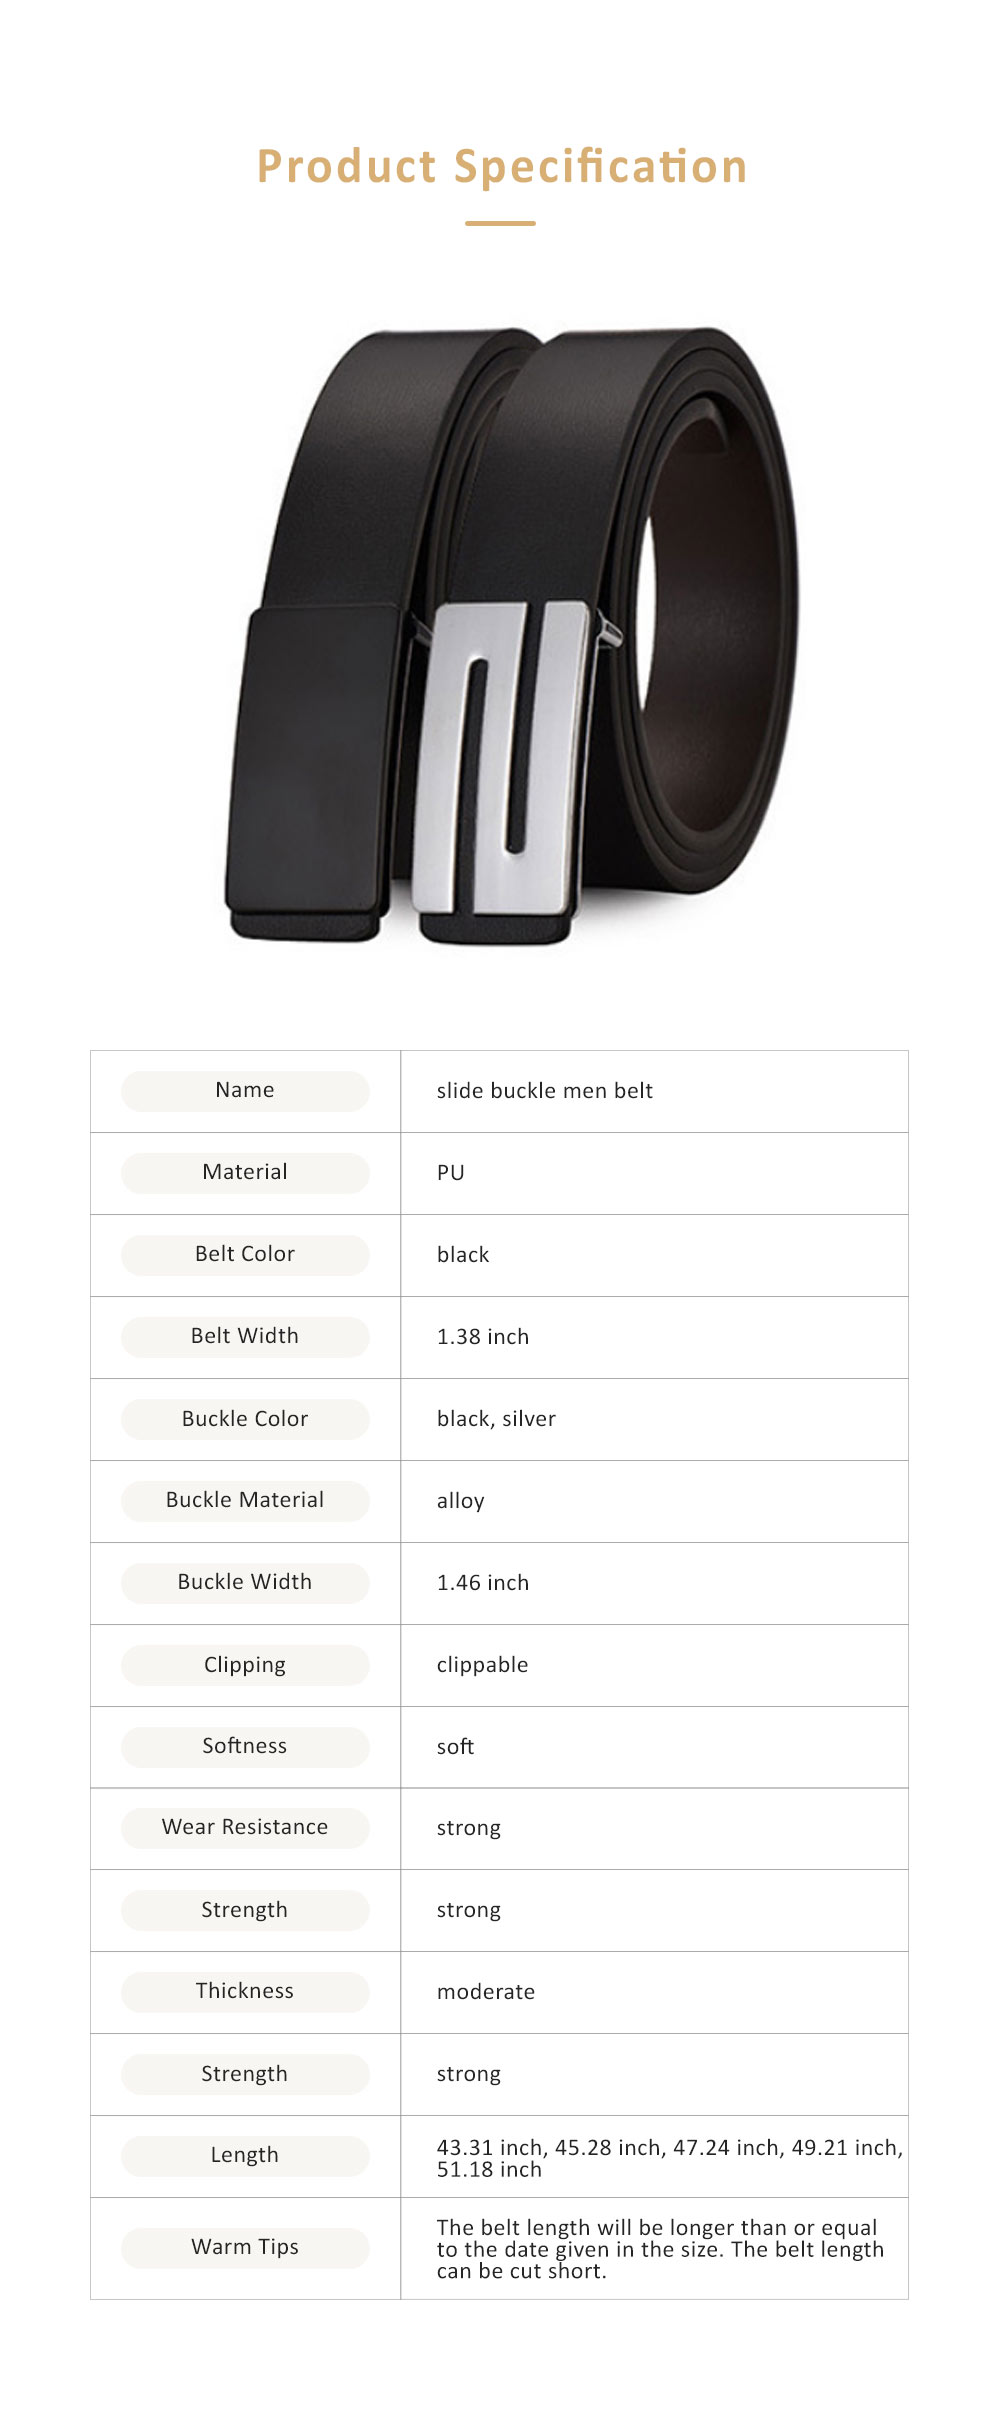 Minimalist Ultra-soft Smooth PU Men Alloy Slide Buckle Belt, Casual Youth Waist Band for Men Students 5